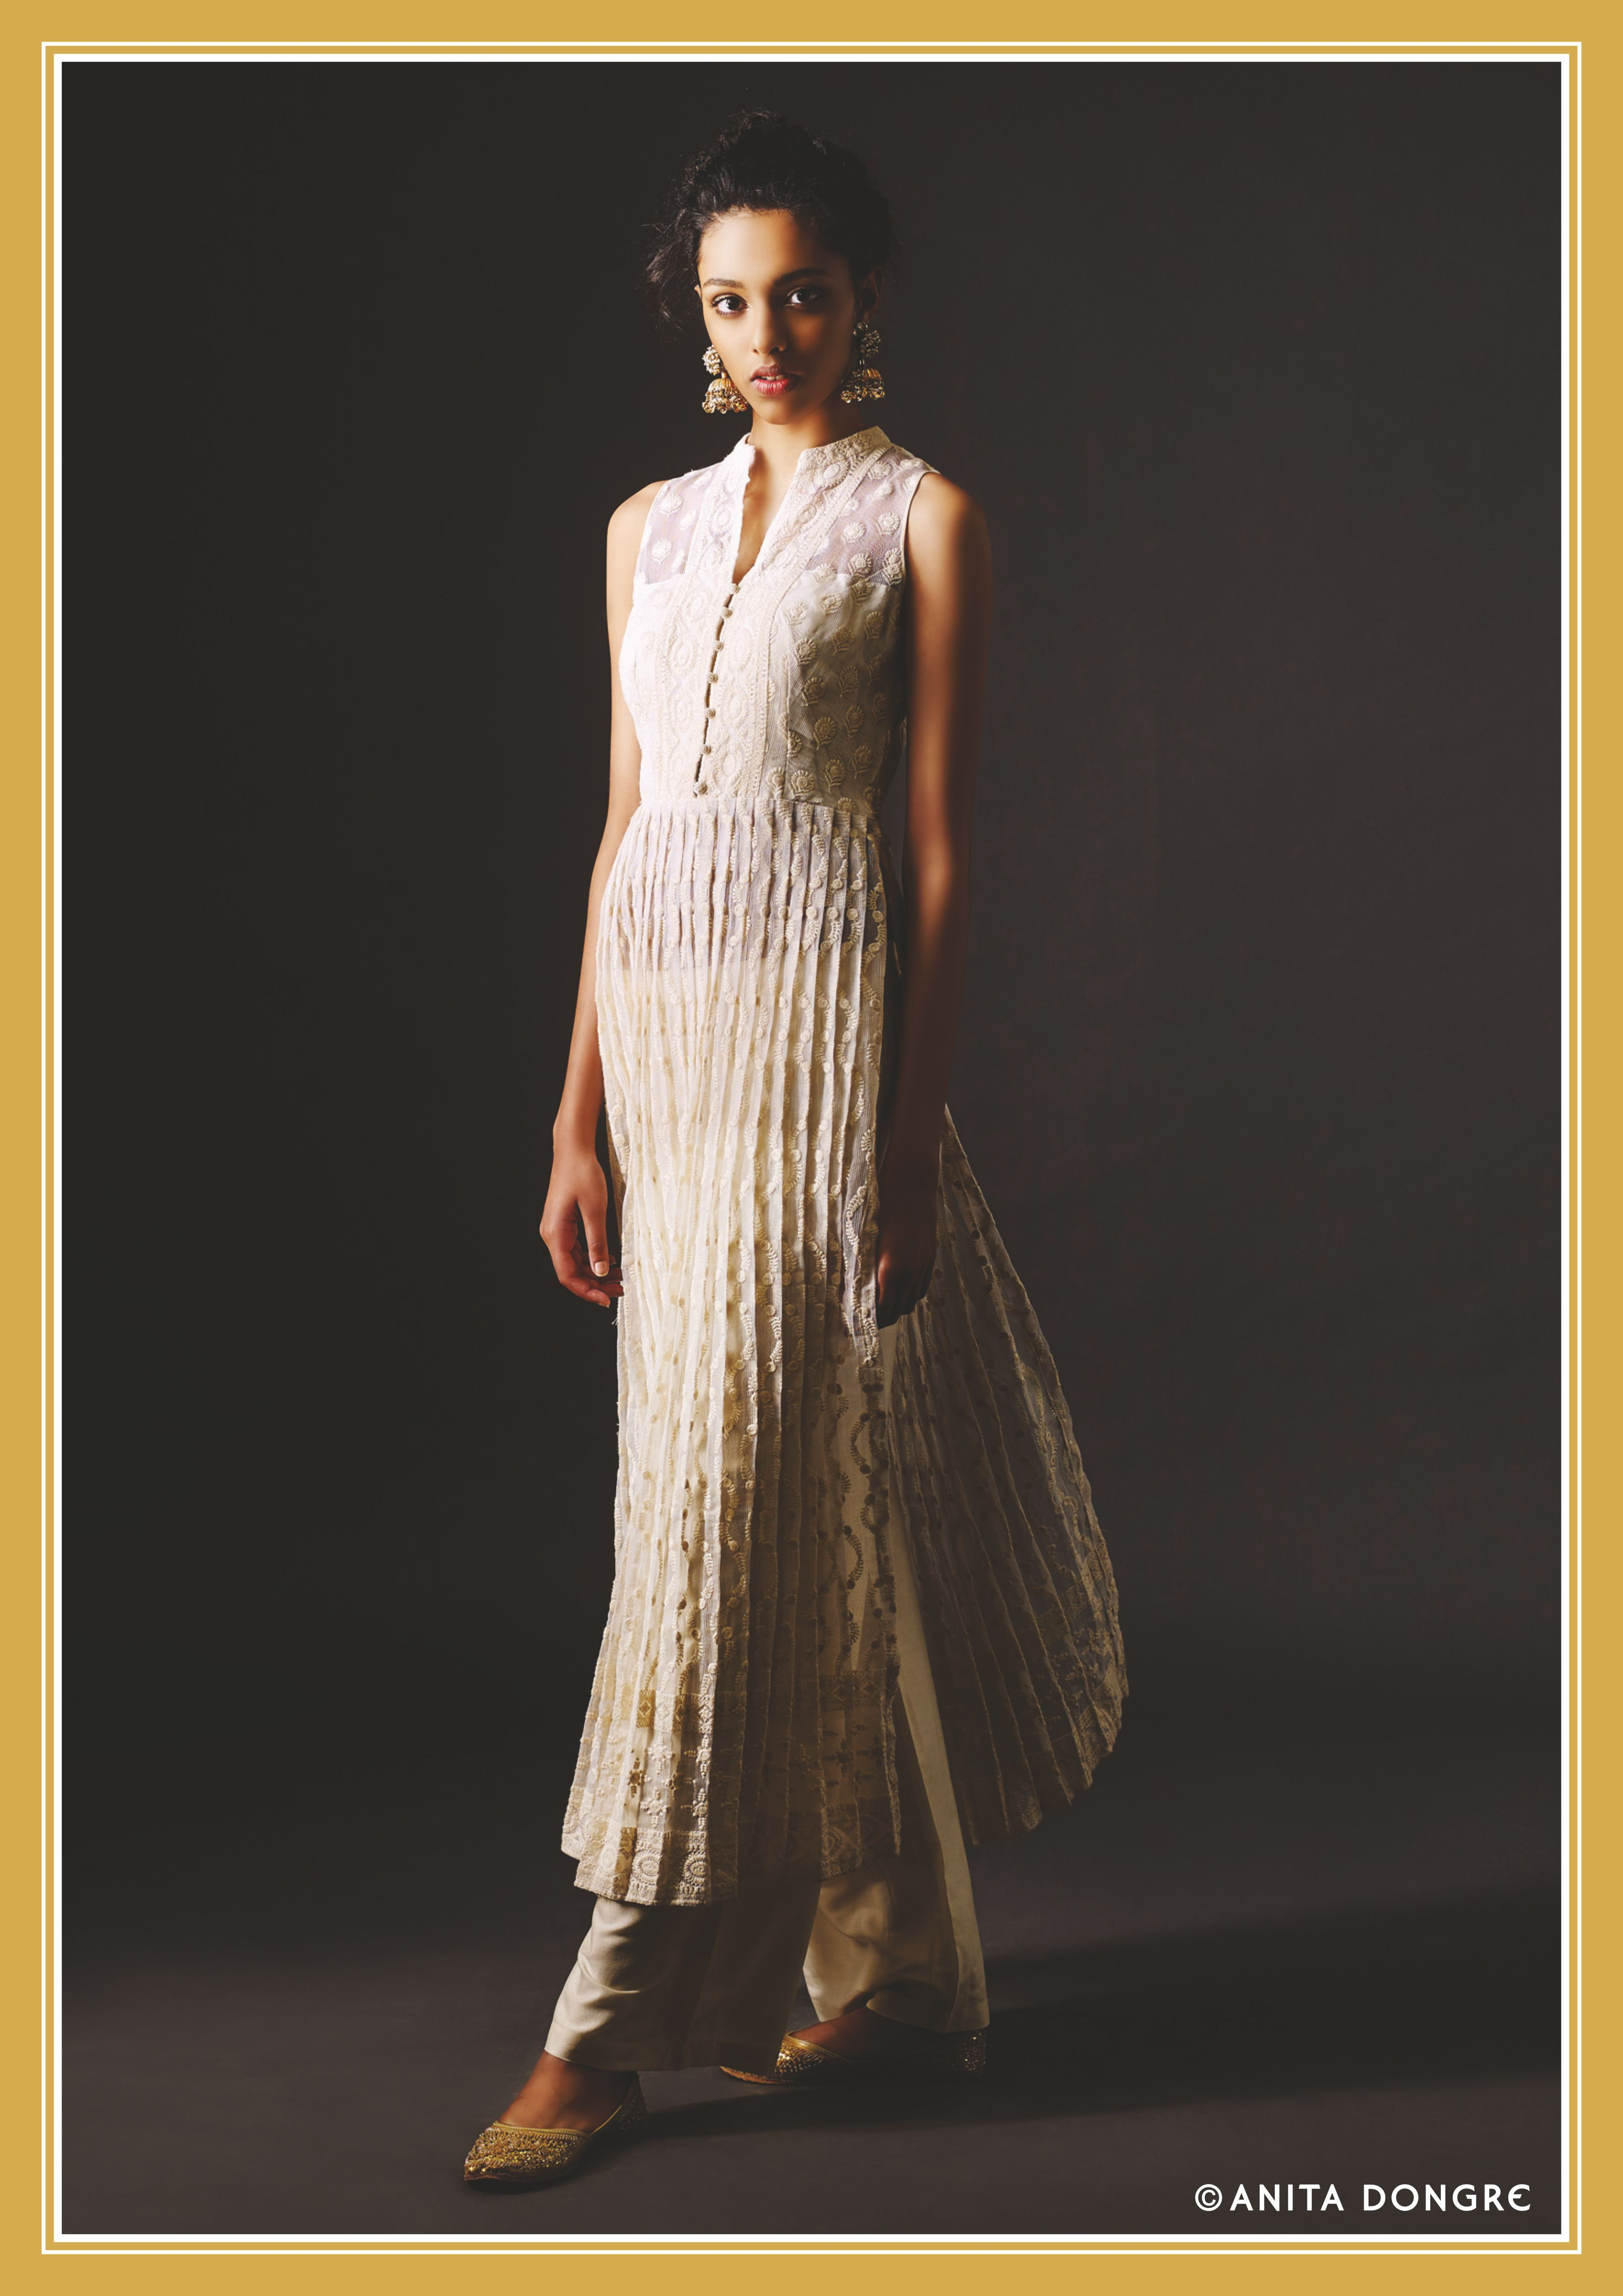 084b5fcf89e From the Anita Dongre pret collection